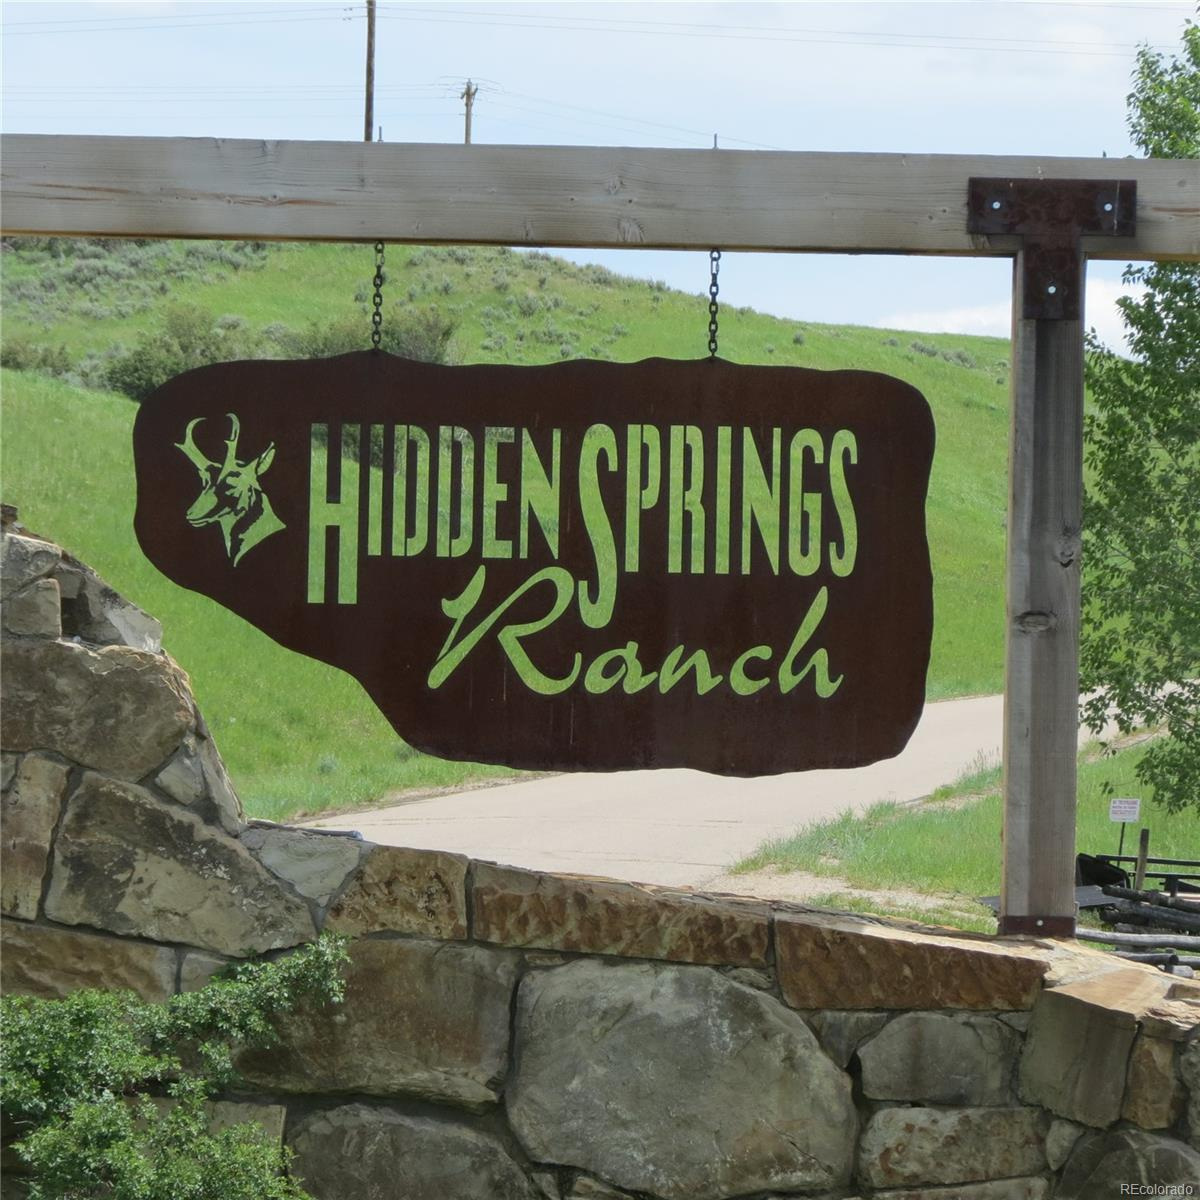 38620 Hidden Springs Drive, Hayden, CO 81639 - Hayden, CO real estate listing